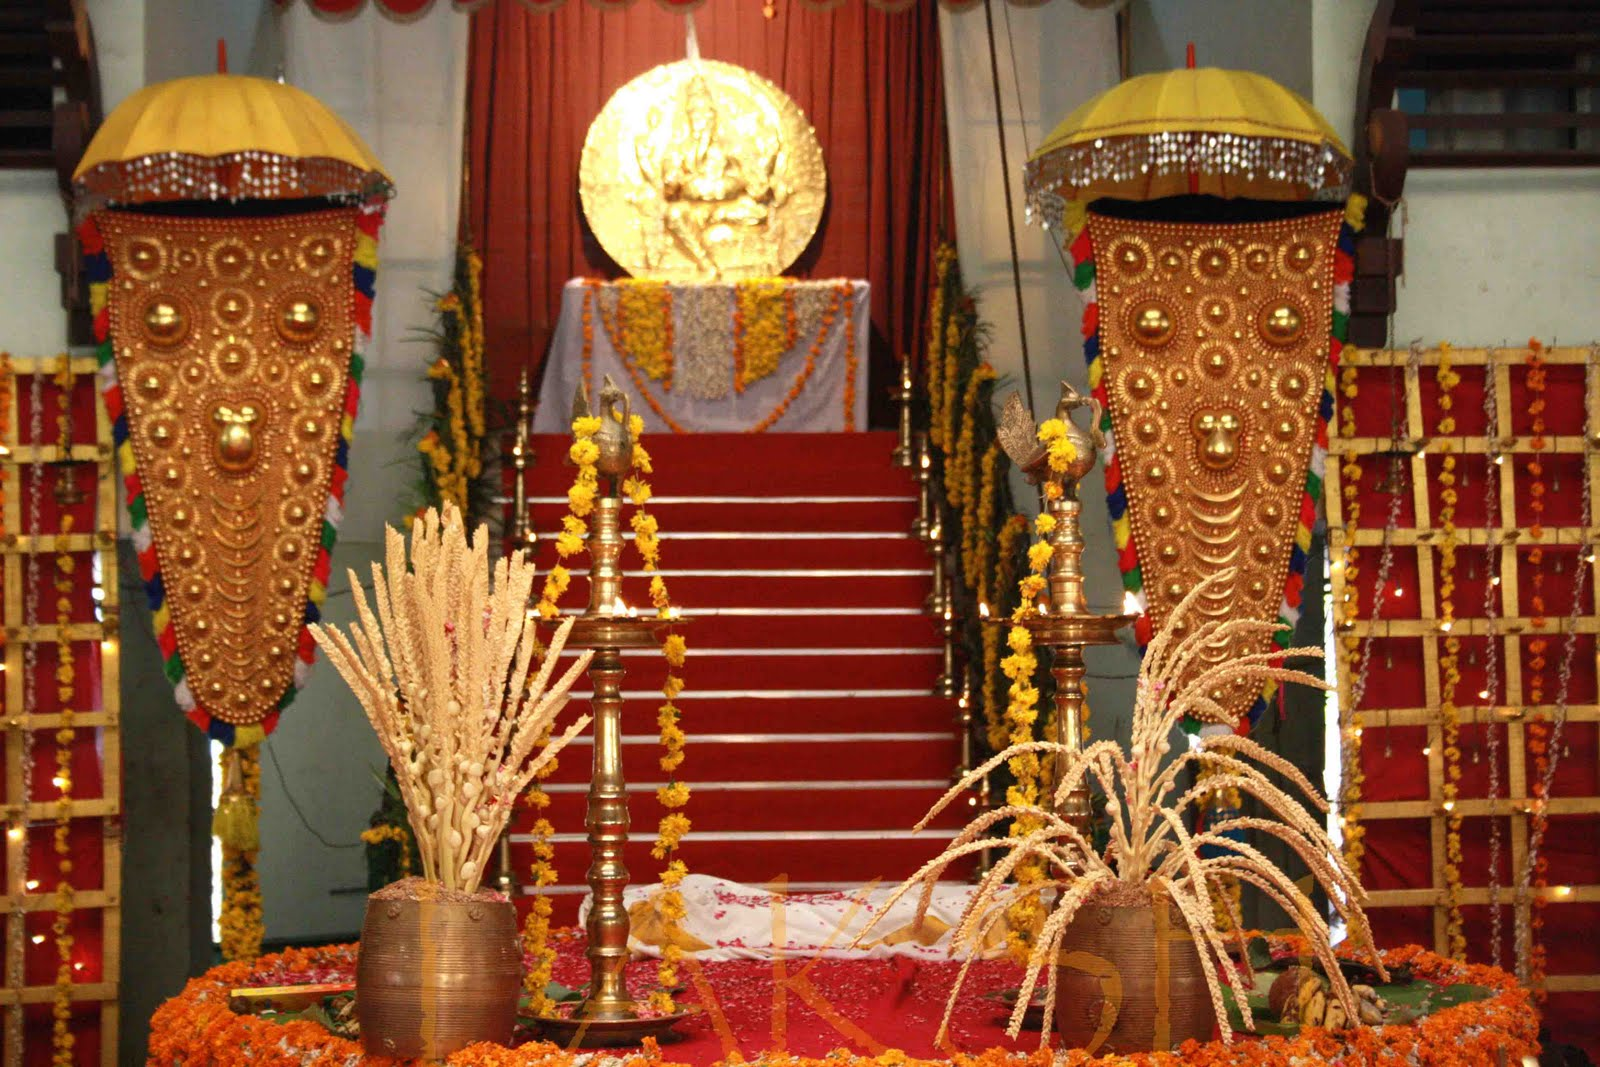 Celebrations Decor - An Indian Decor blog: The Wedding Decor